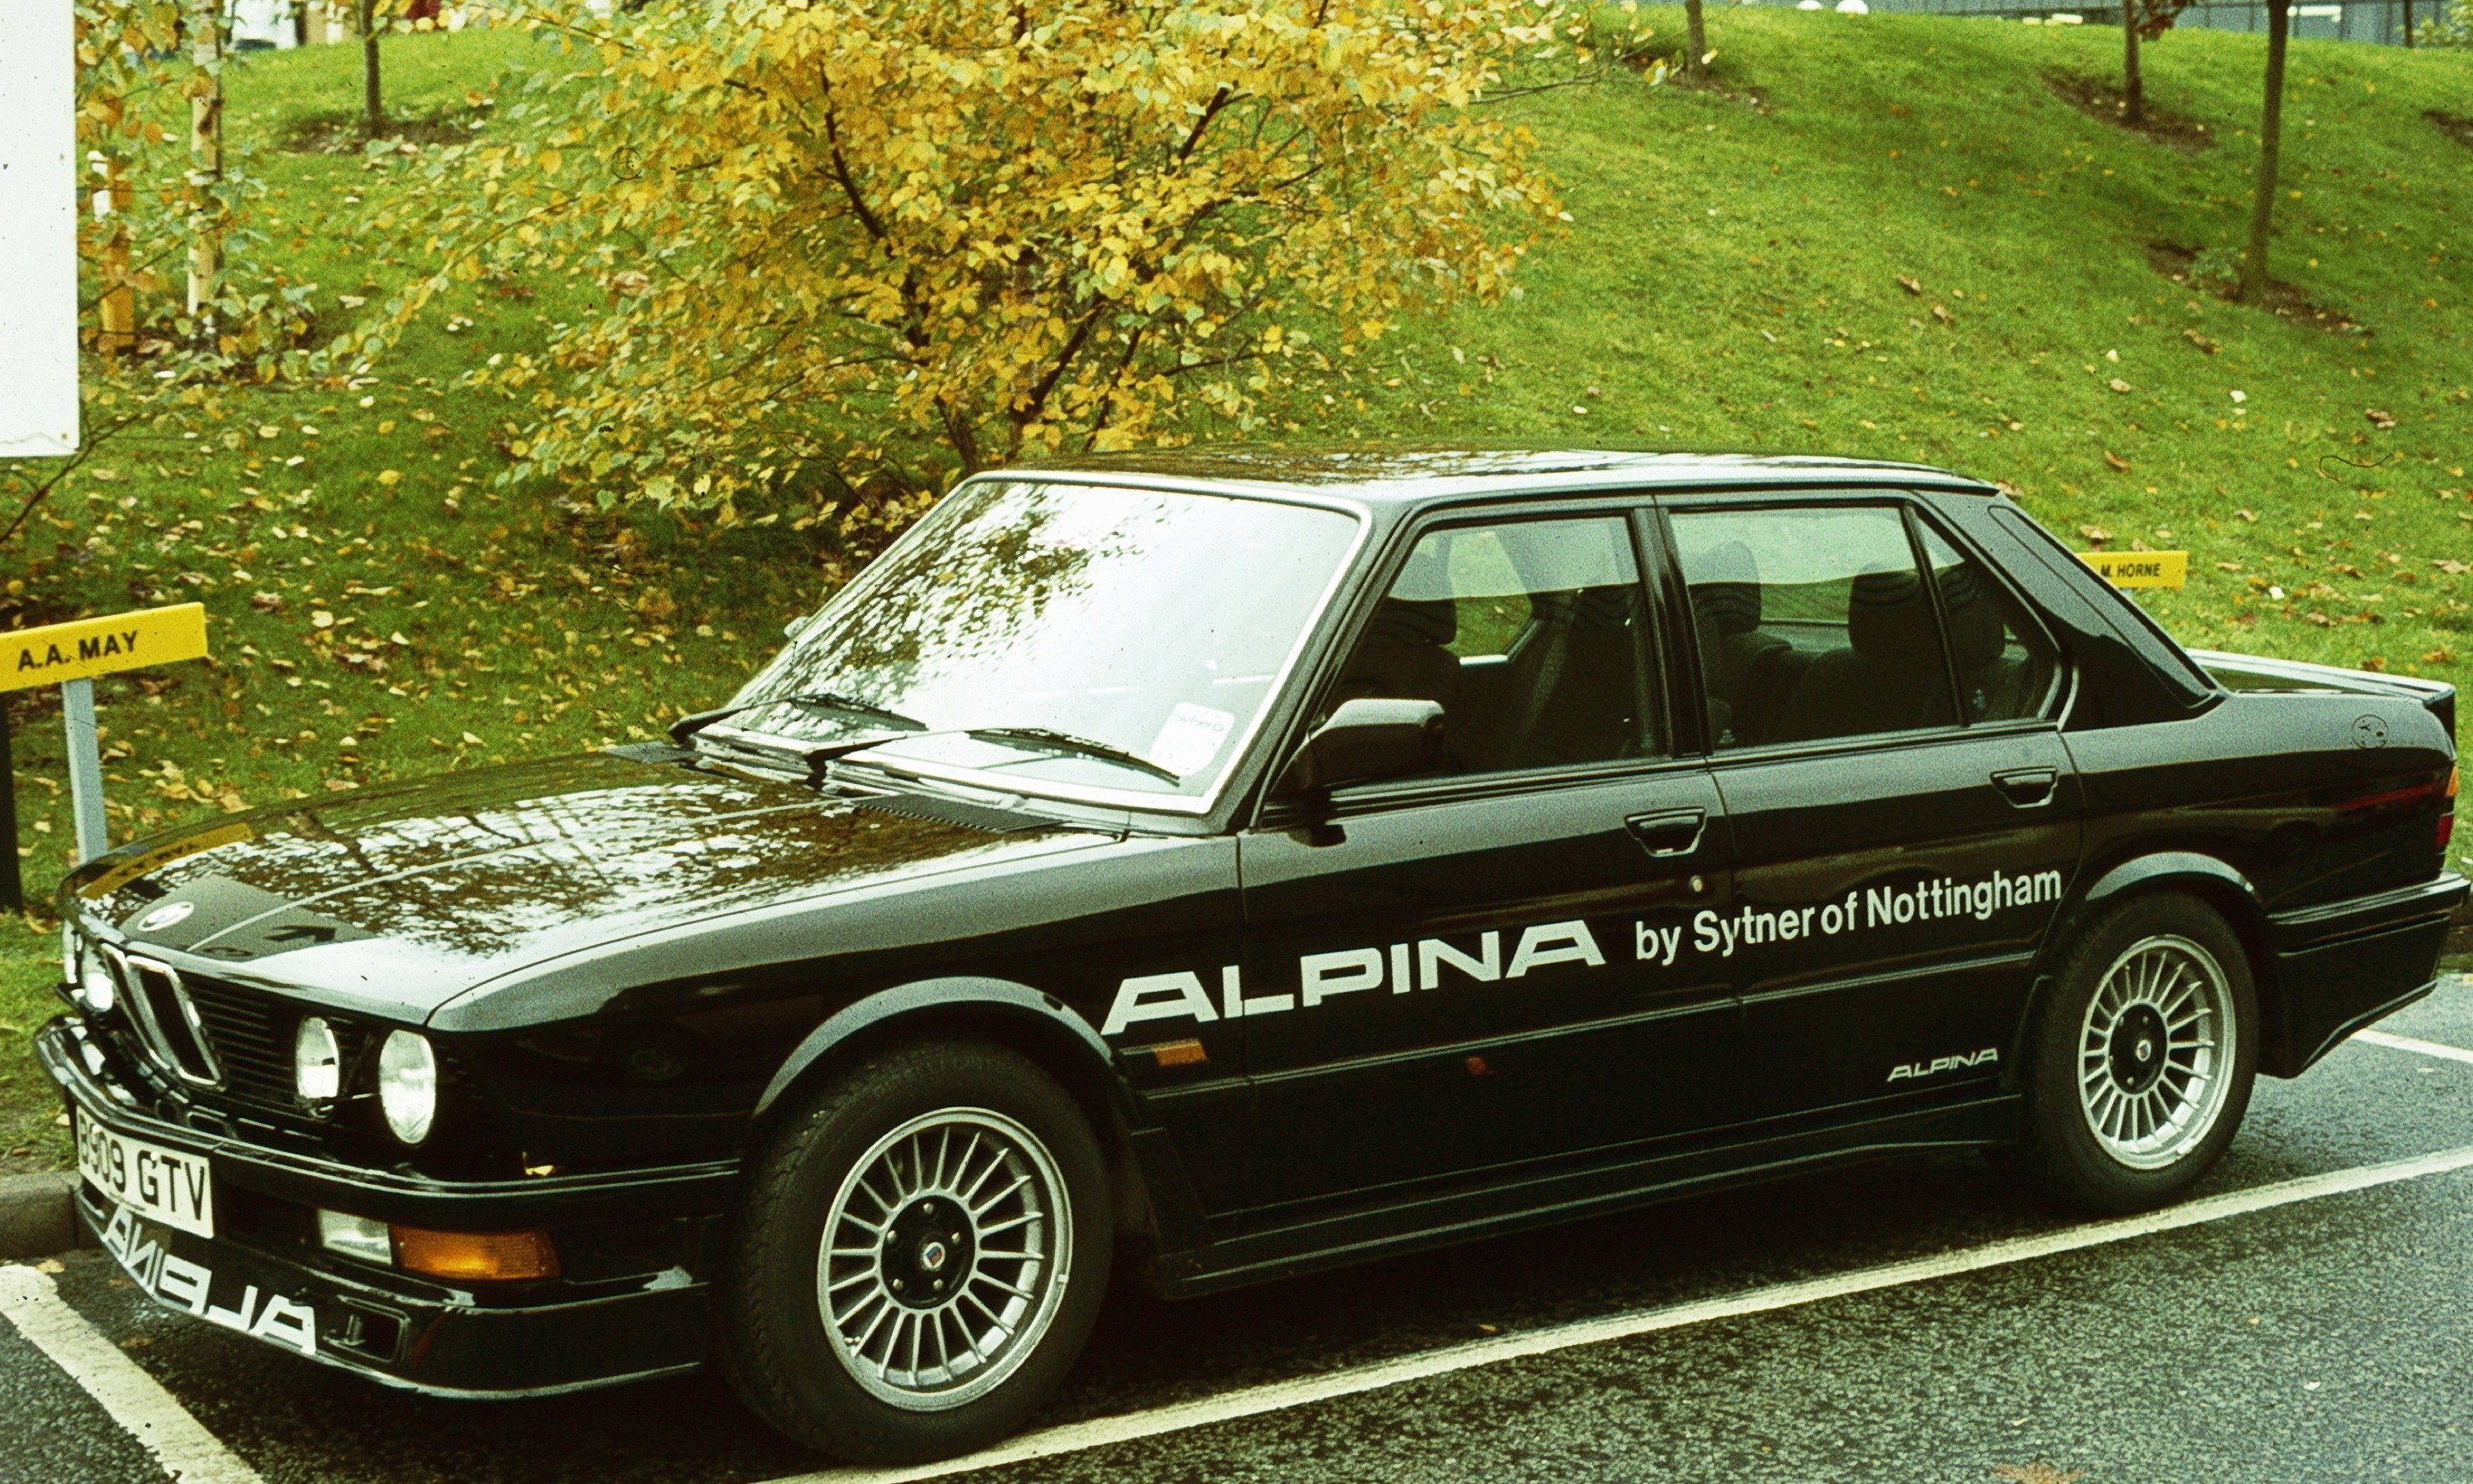 File:BMW E28 mit Tuner Werbung jpg - Wikimedia Commons